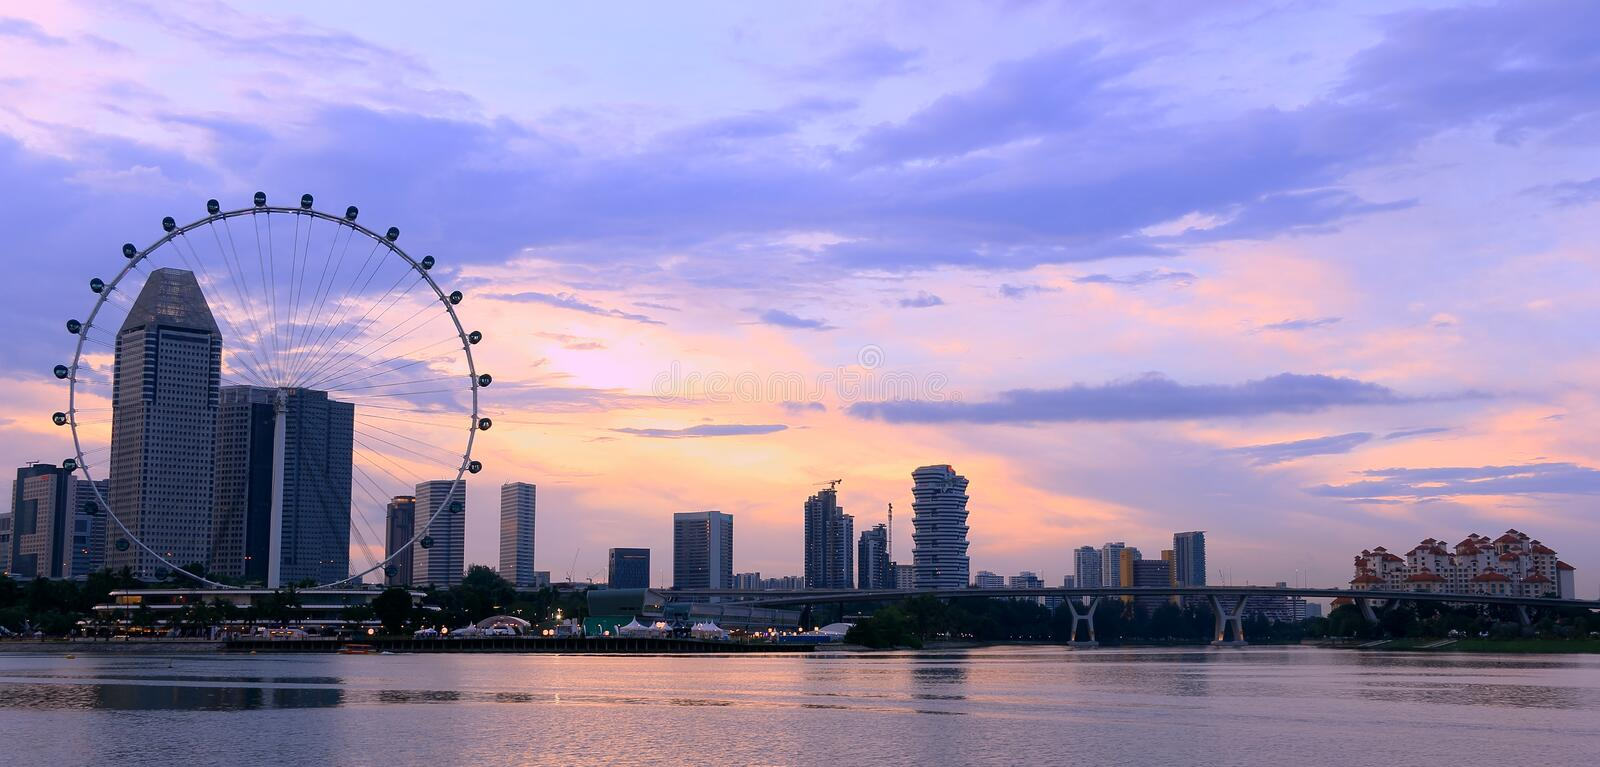 Singapore flyer and city in the sunset. Clouds in the sky royalty free stock photography